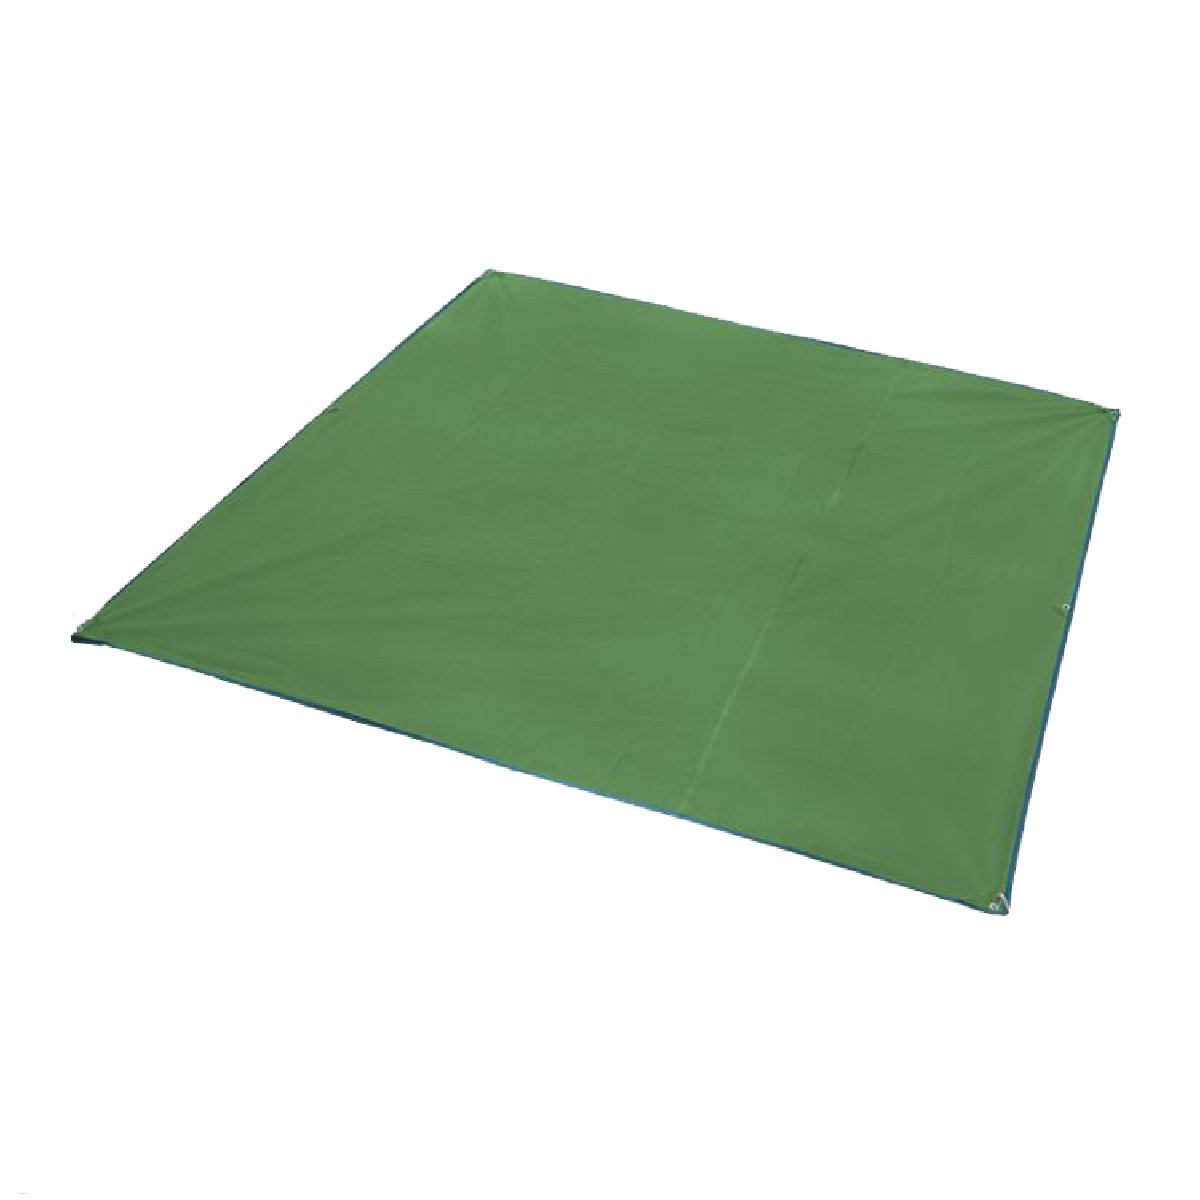 Azarxis Ground Cloth for Tent Footprint Floor Saver Hammock Tarp Rain Fly Canopy Groundsheet Shelter Sunshade Easy Set Up Heavy Duty Portable Waterproof Camping Backpacking (Green, 59 x 84.6 inches) by Azarxis